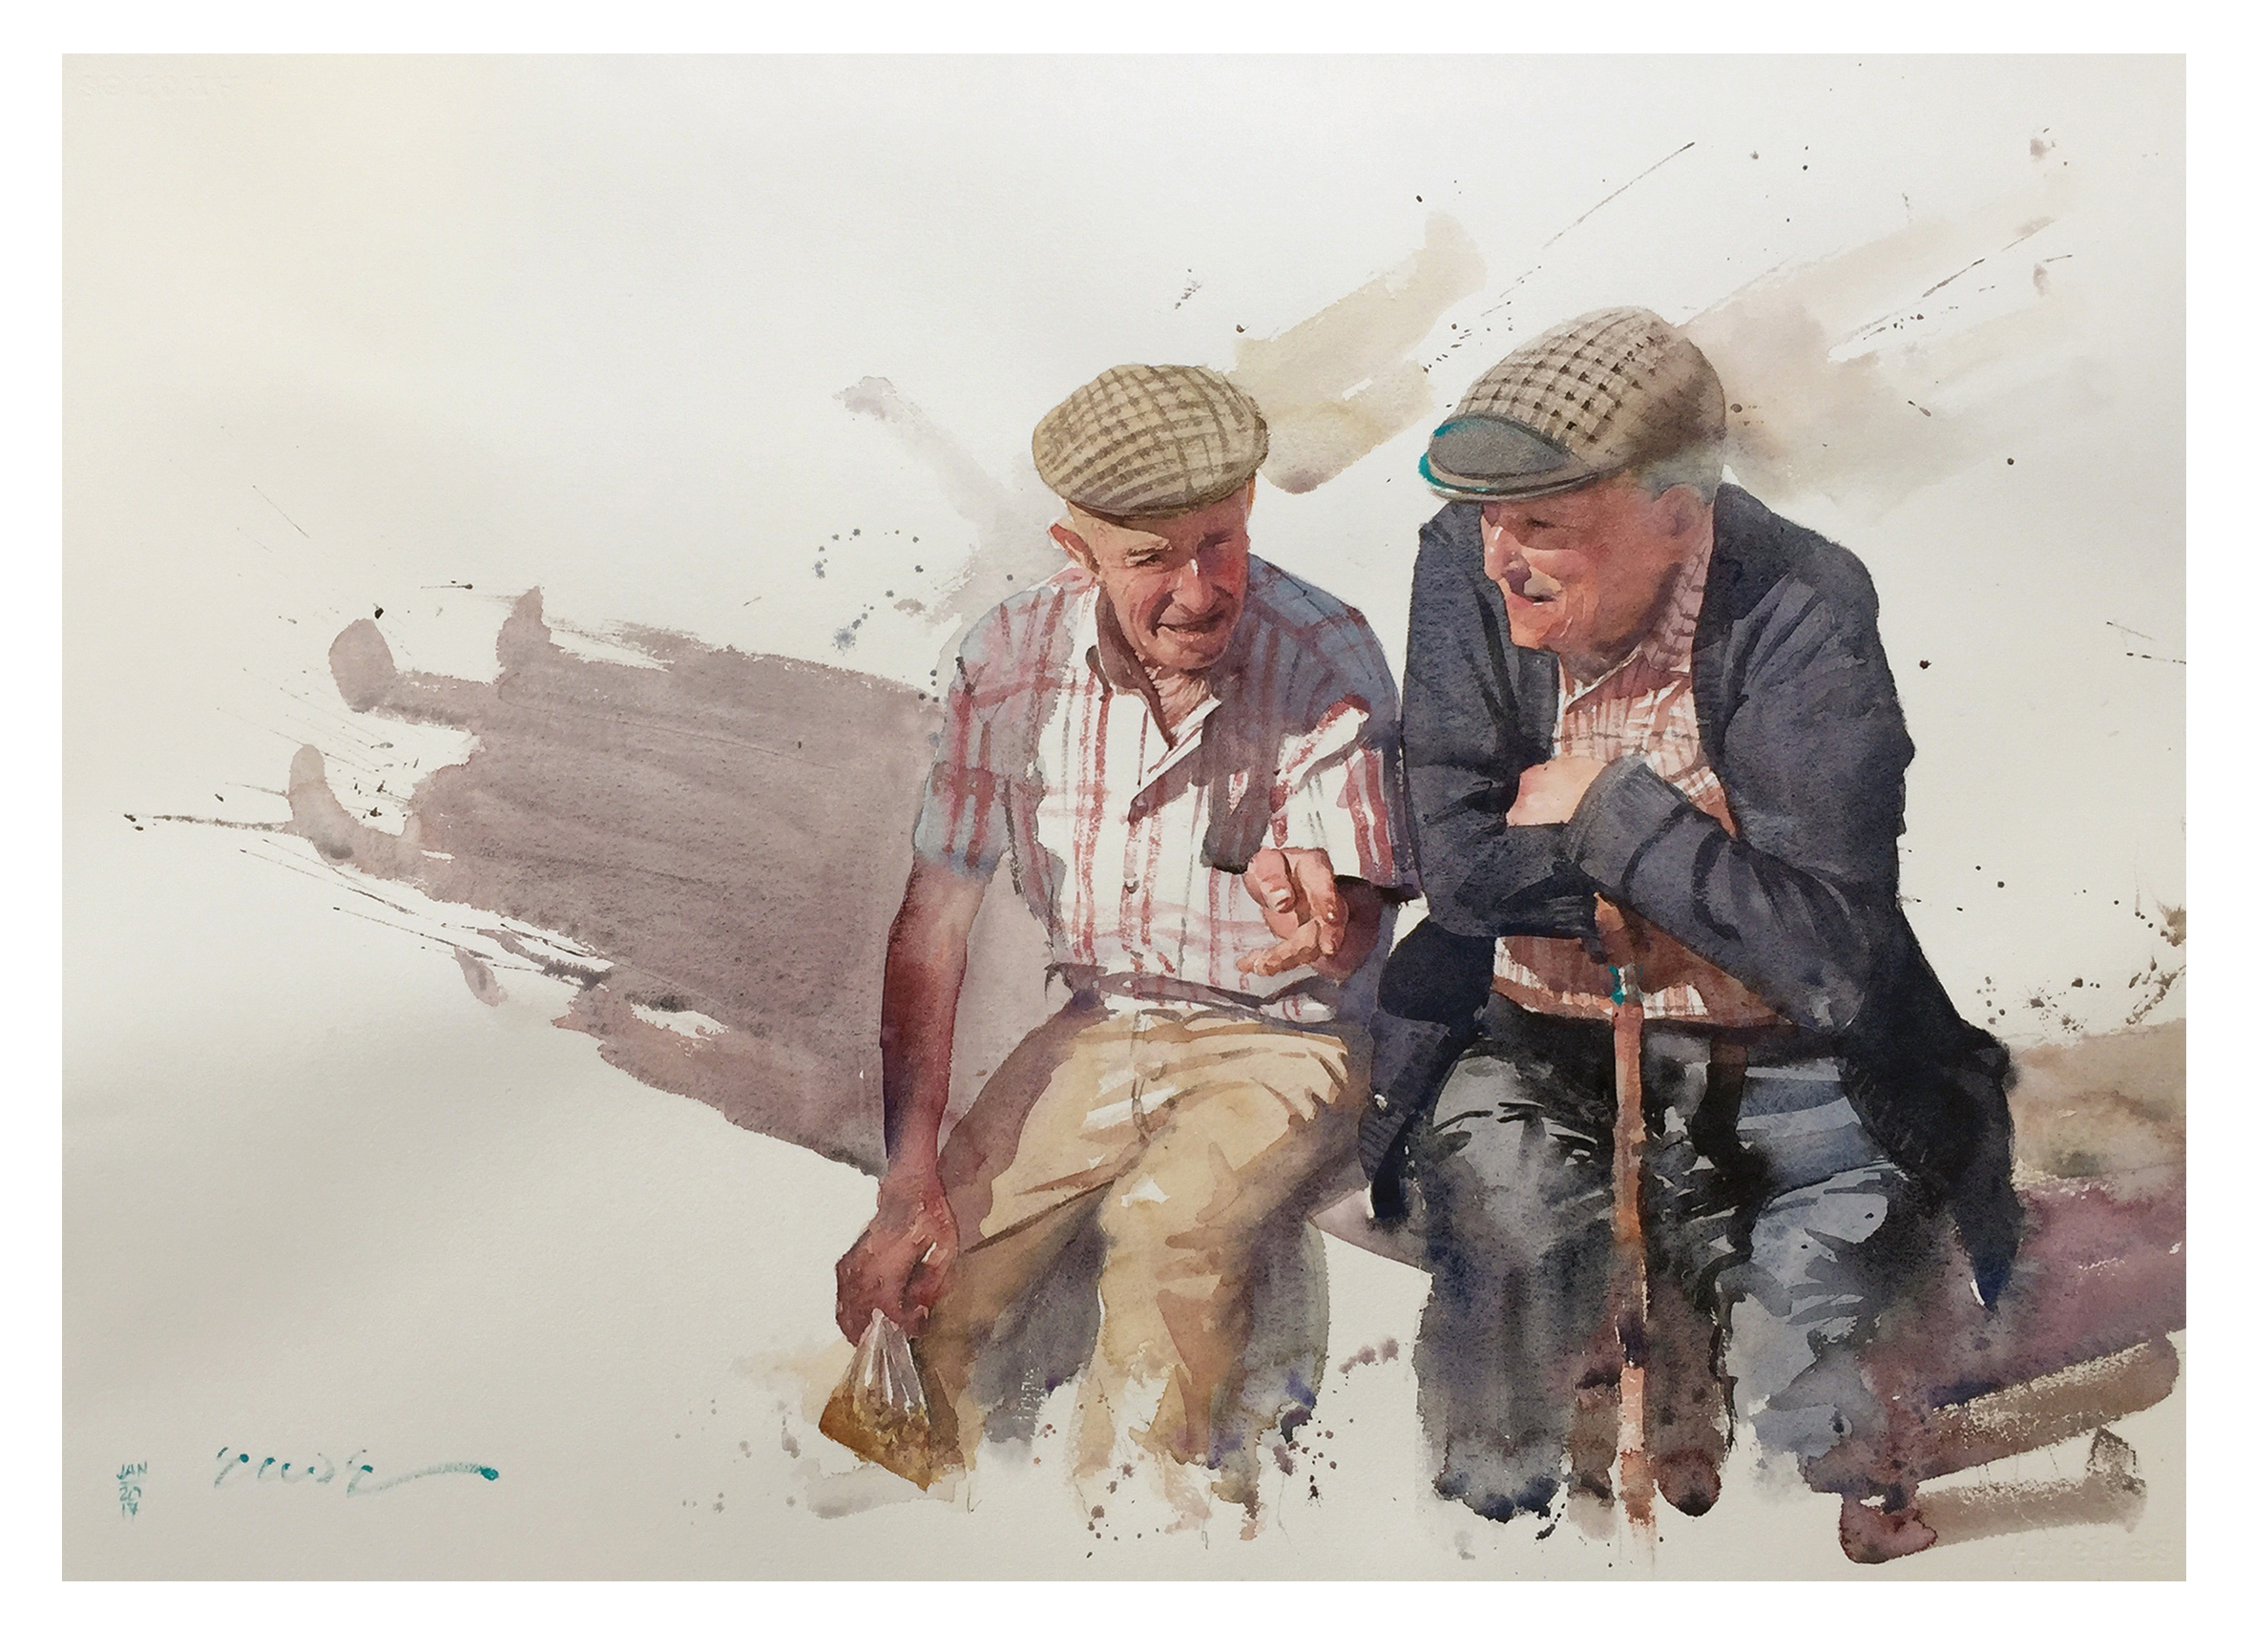 Watercolor painting of two men